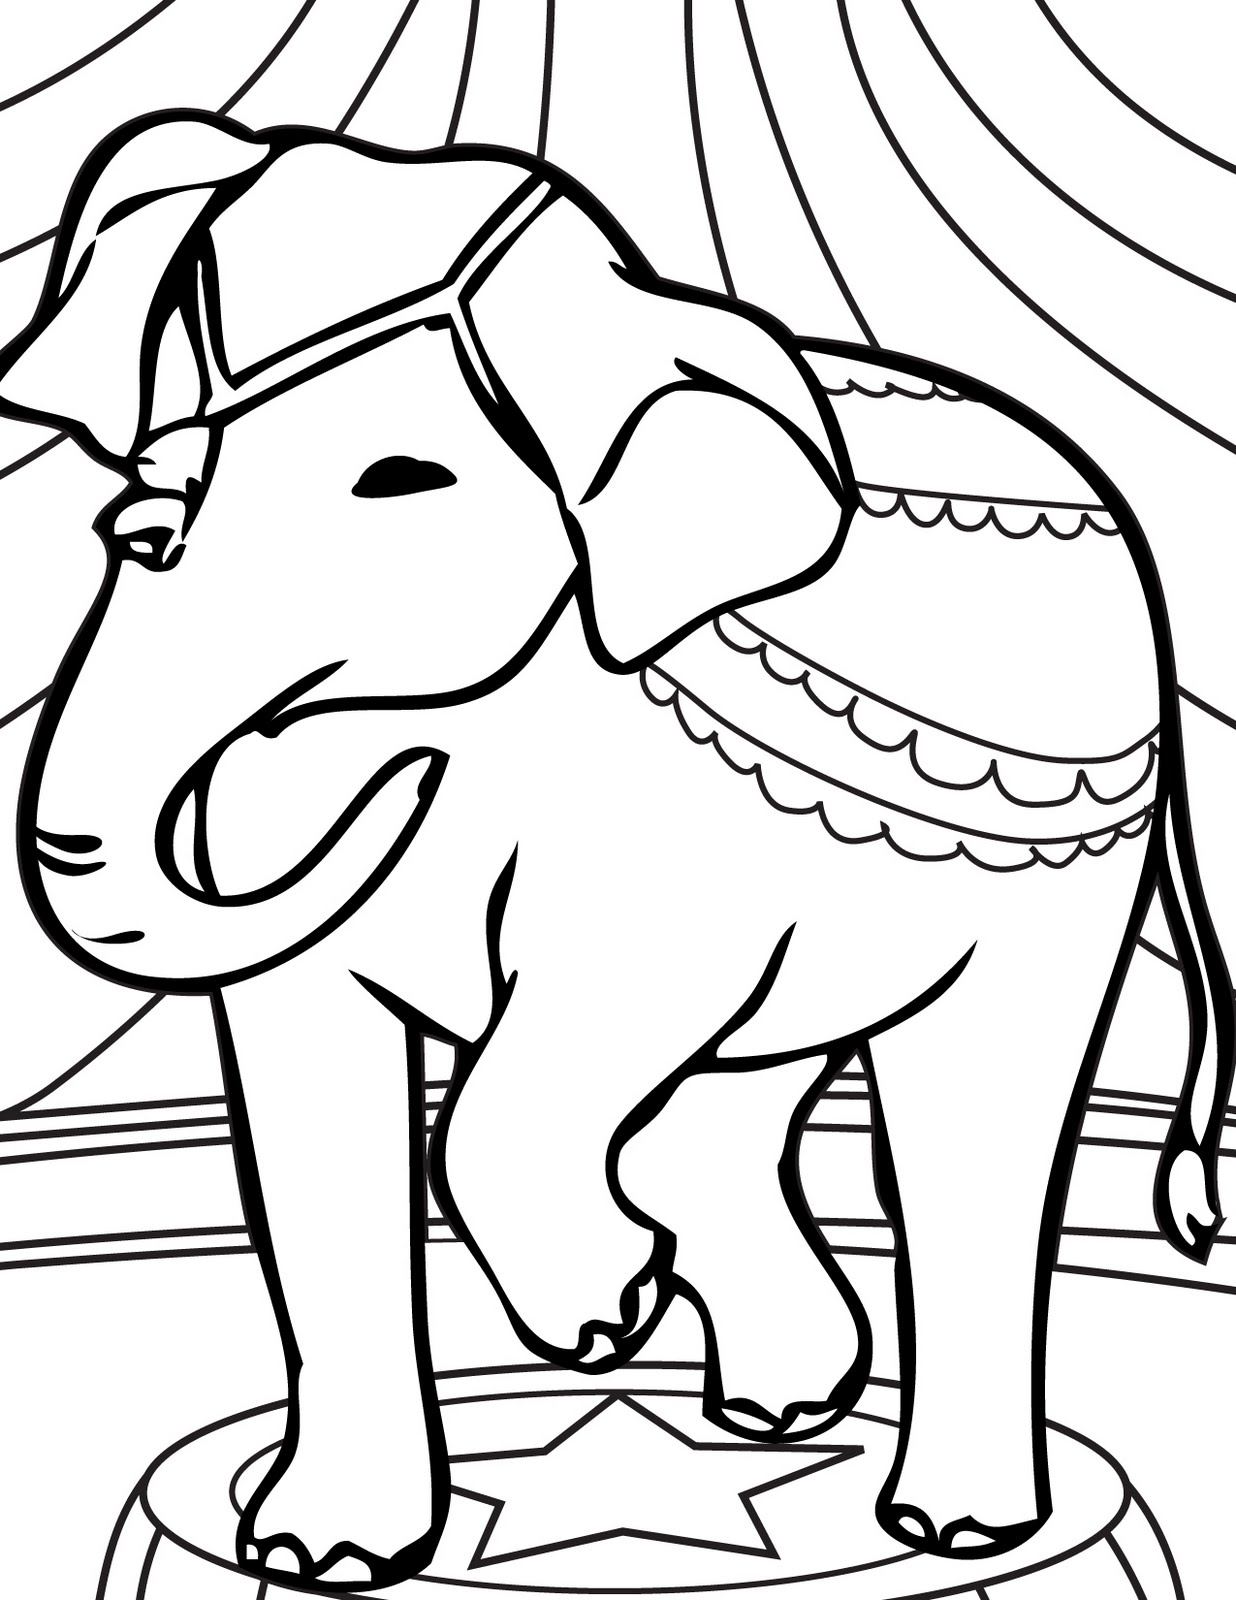 Circus Elephant Coloring Pages Ideas To Kids Clipart Library